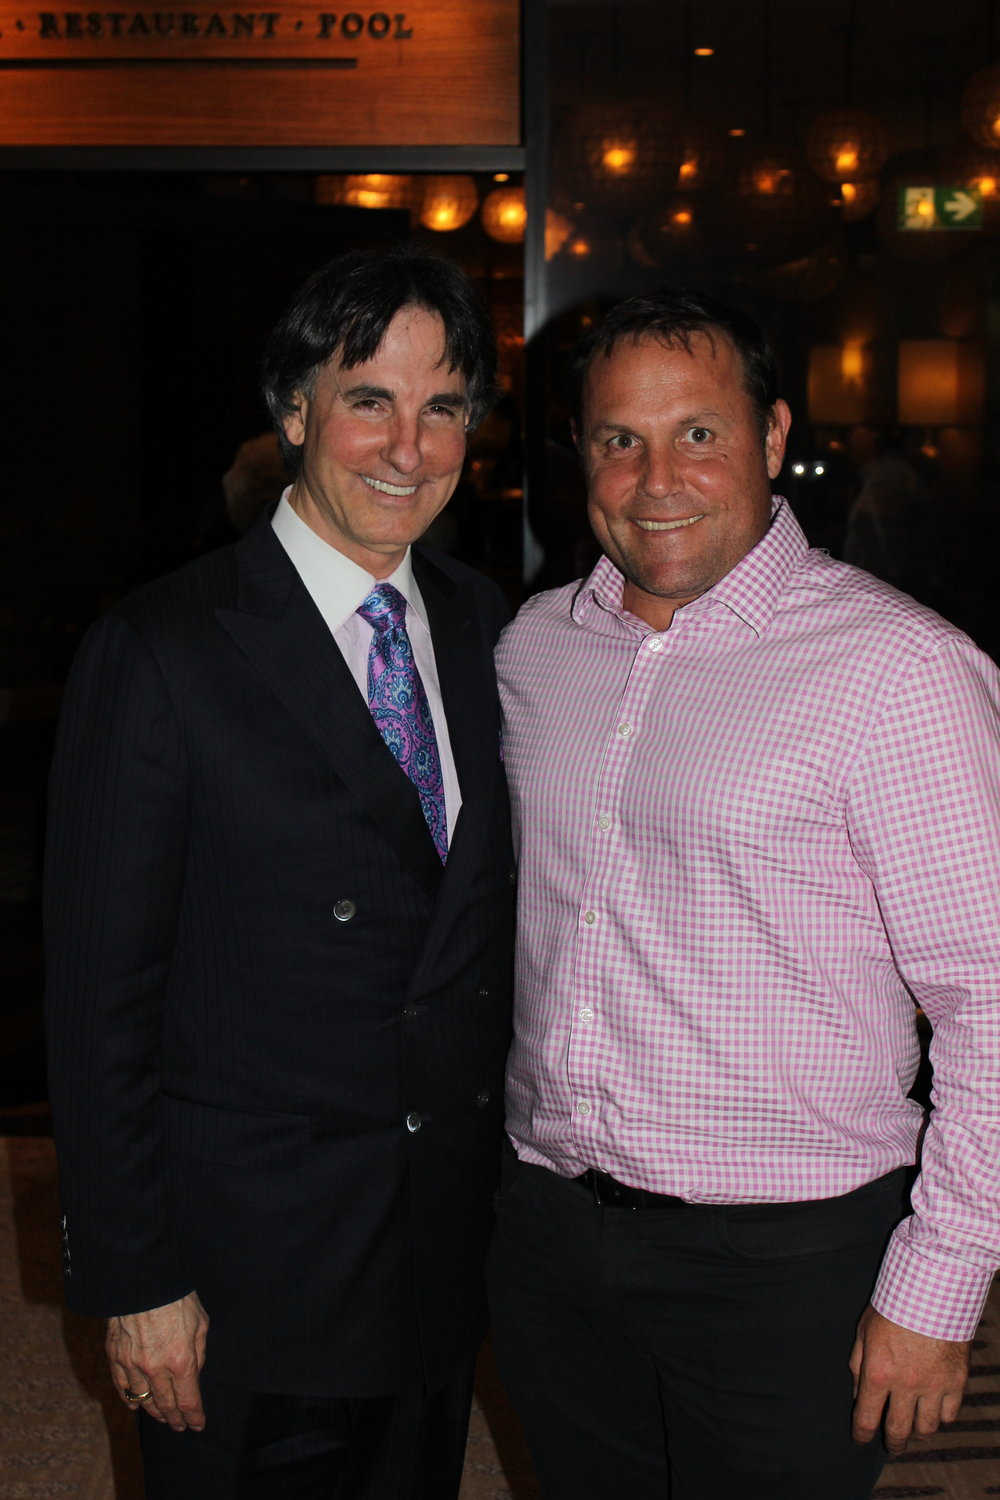 Surround yourself with inspirational people helps you grow.... here with the Dr John Martini.